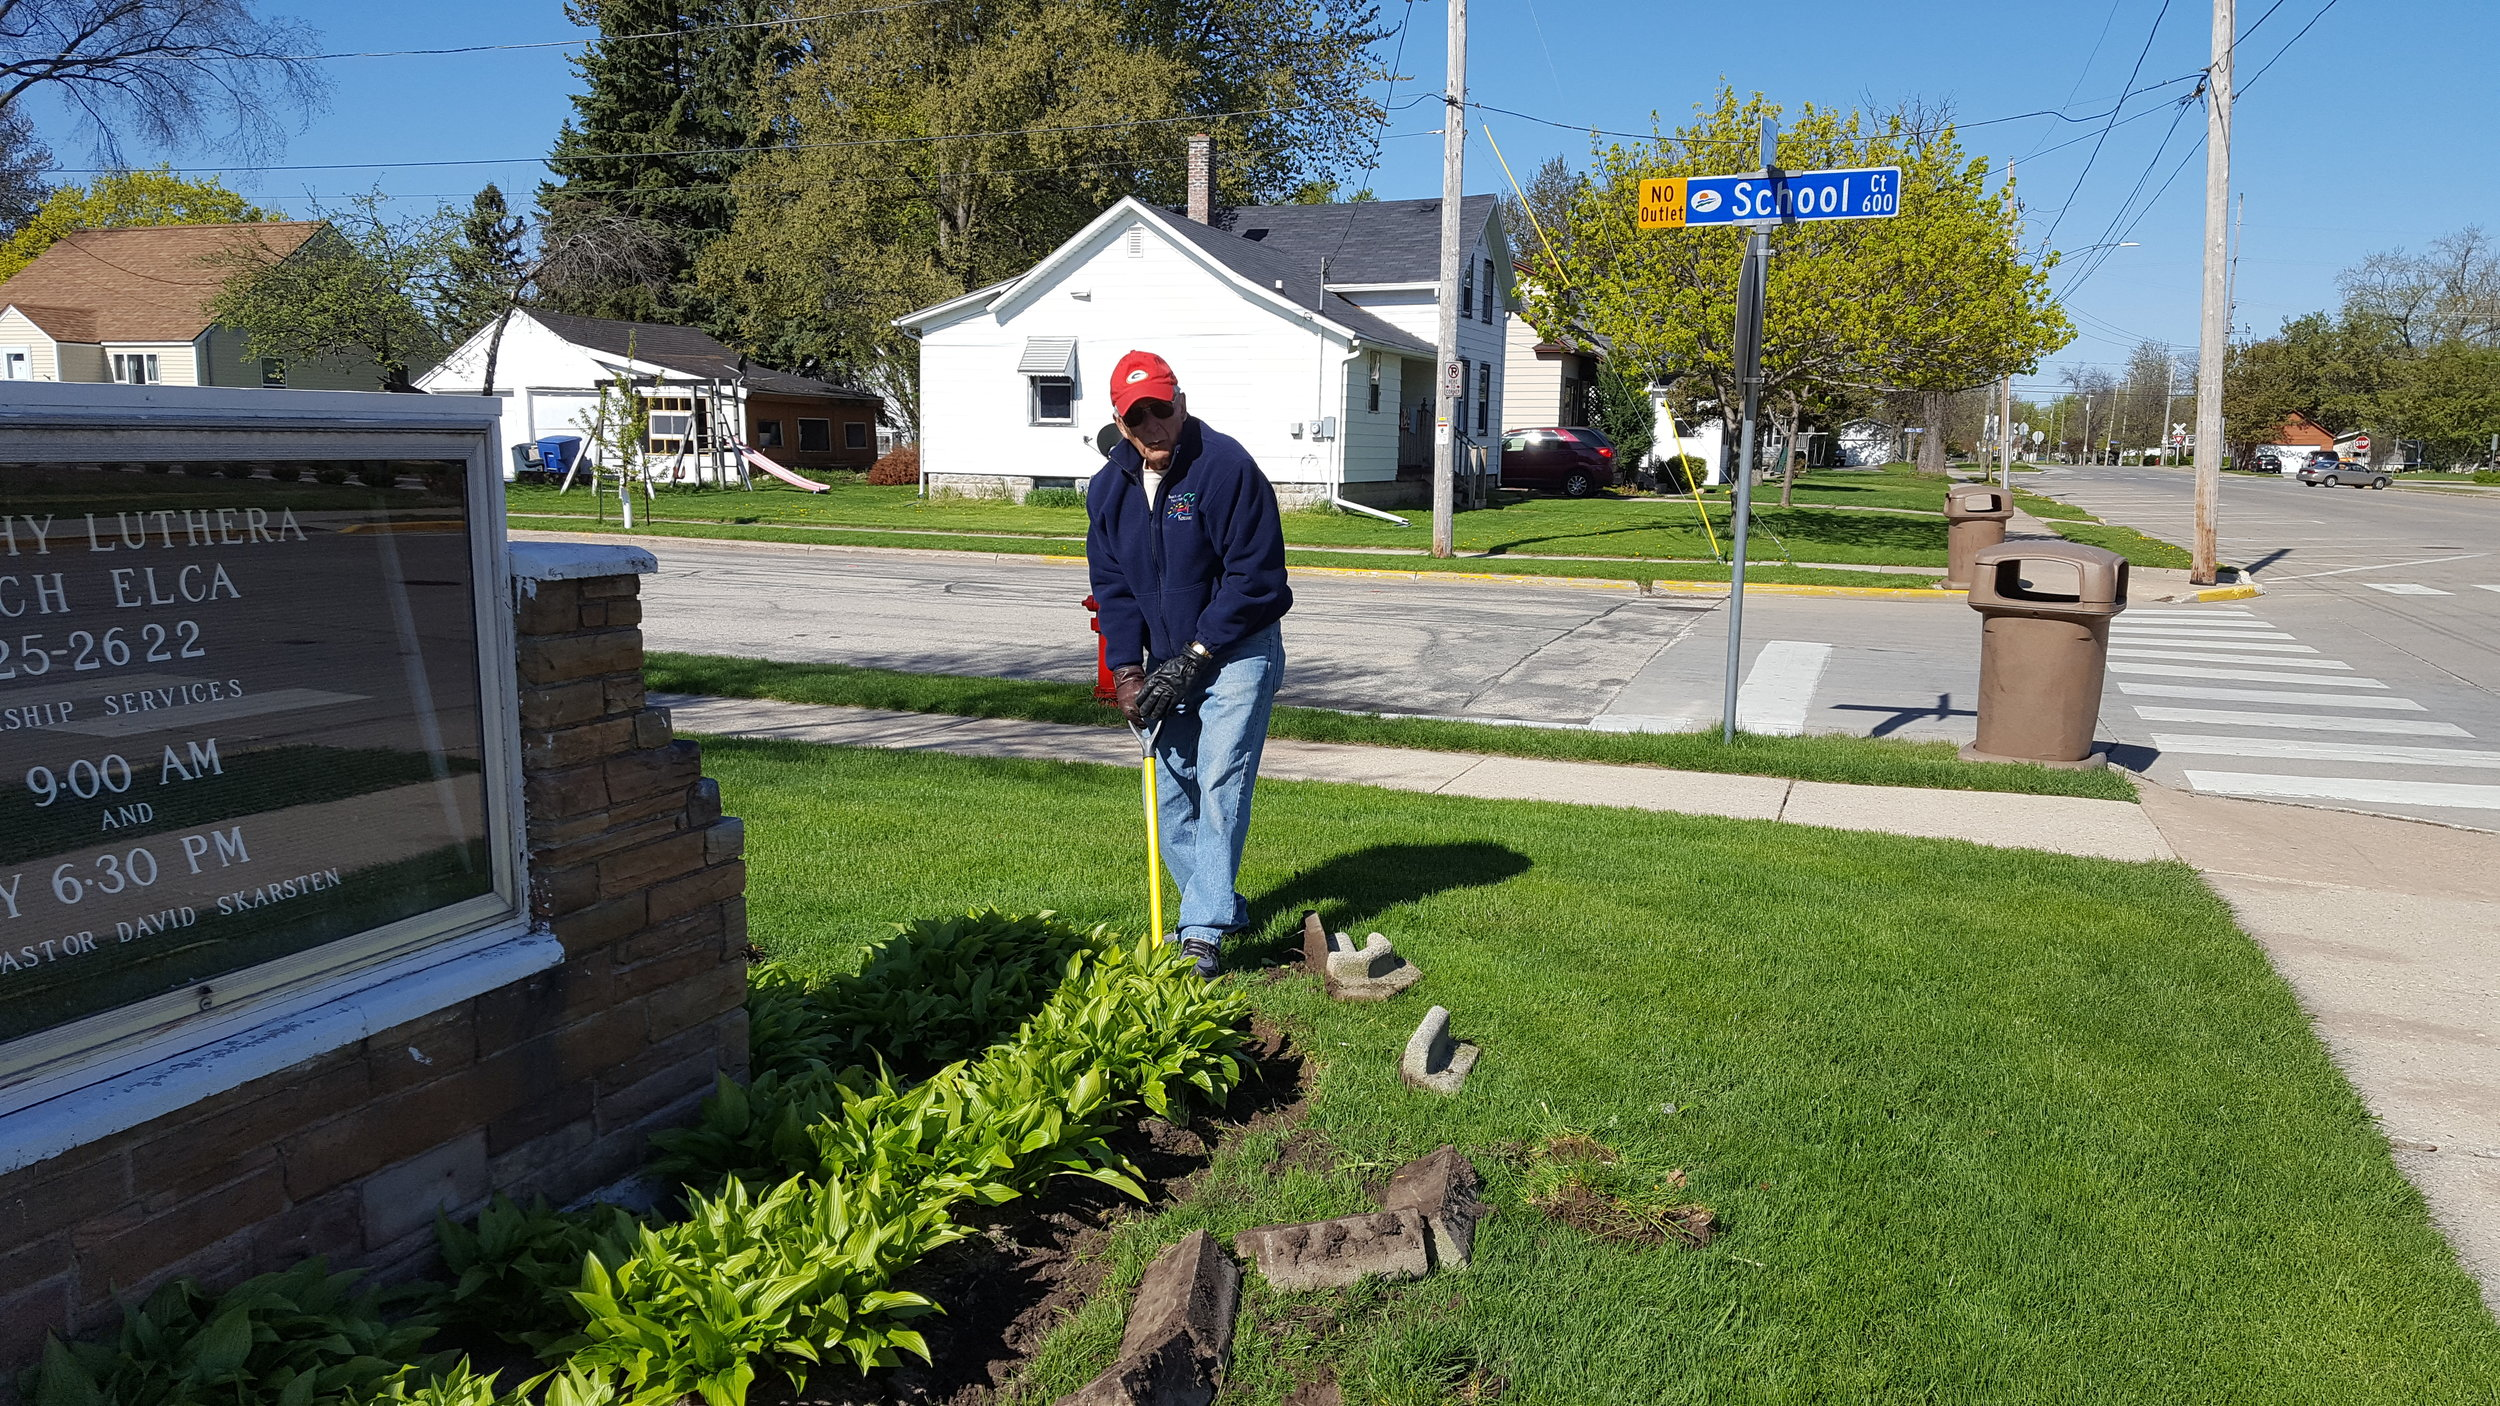 Jim Sodoski spring cleanup May 6 2017.jpg